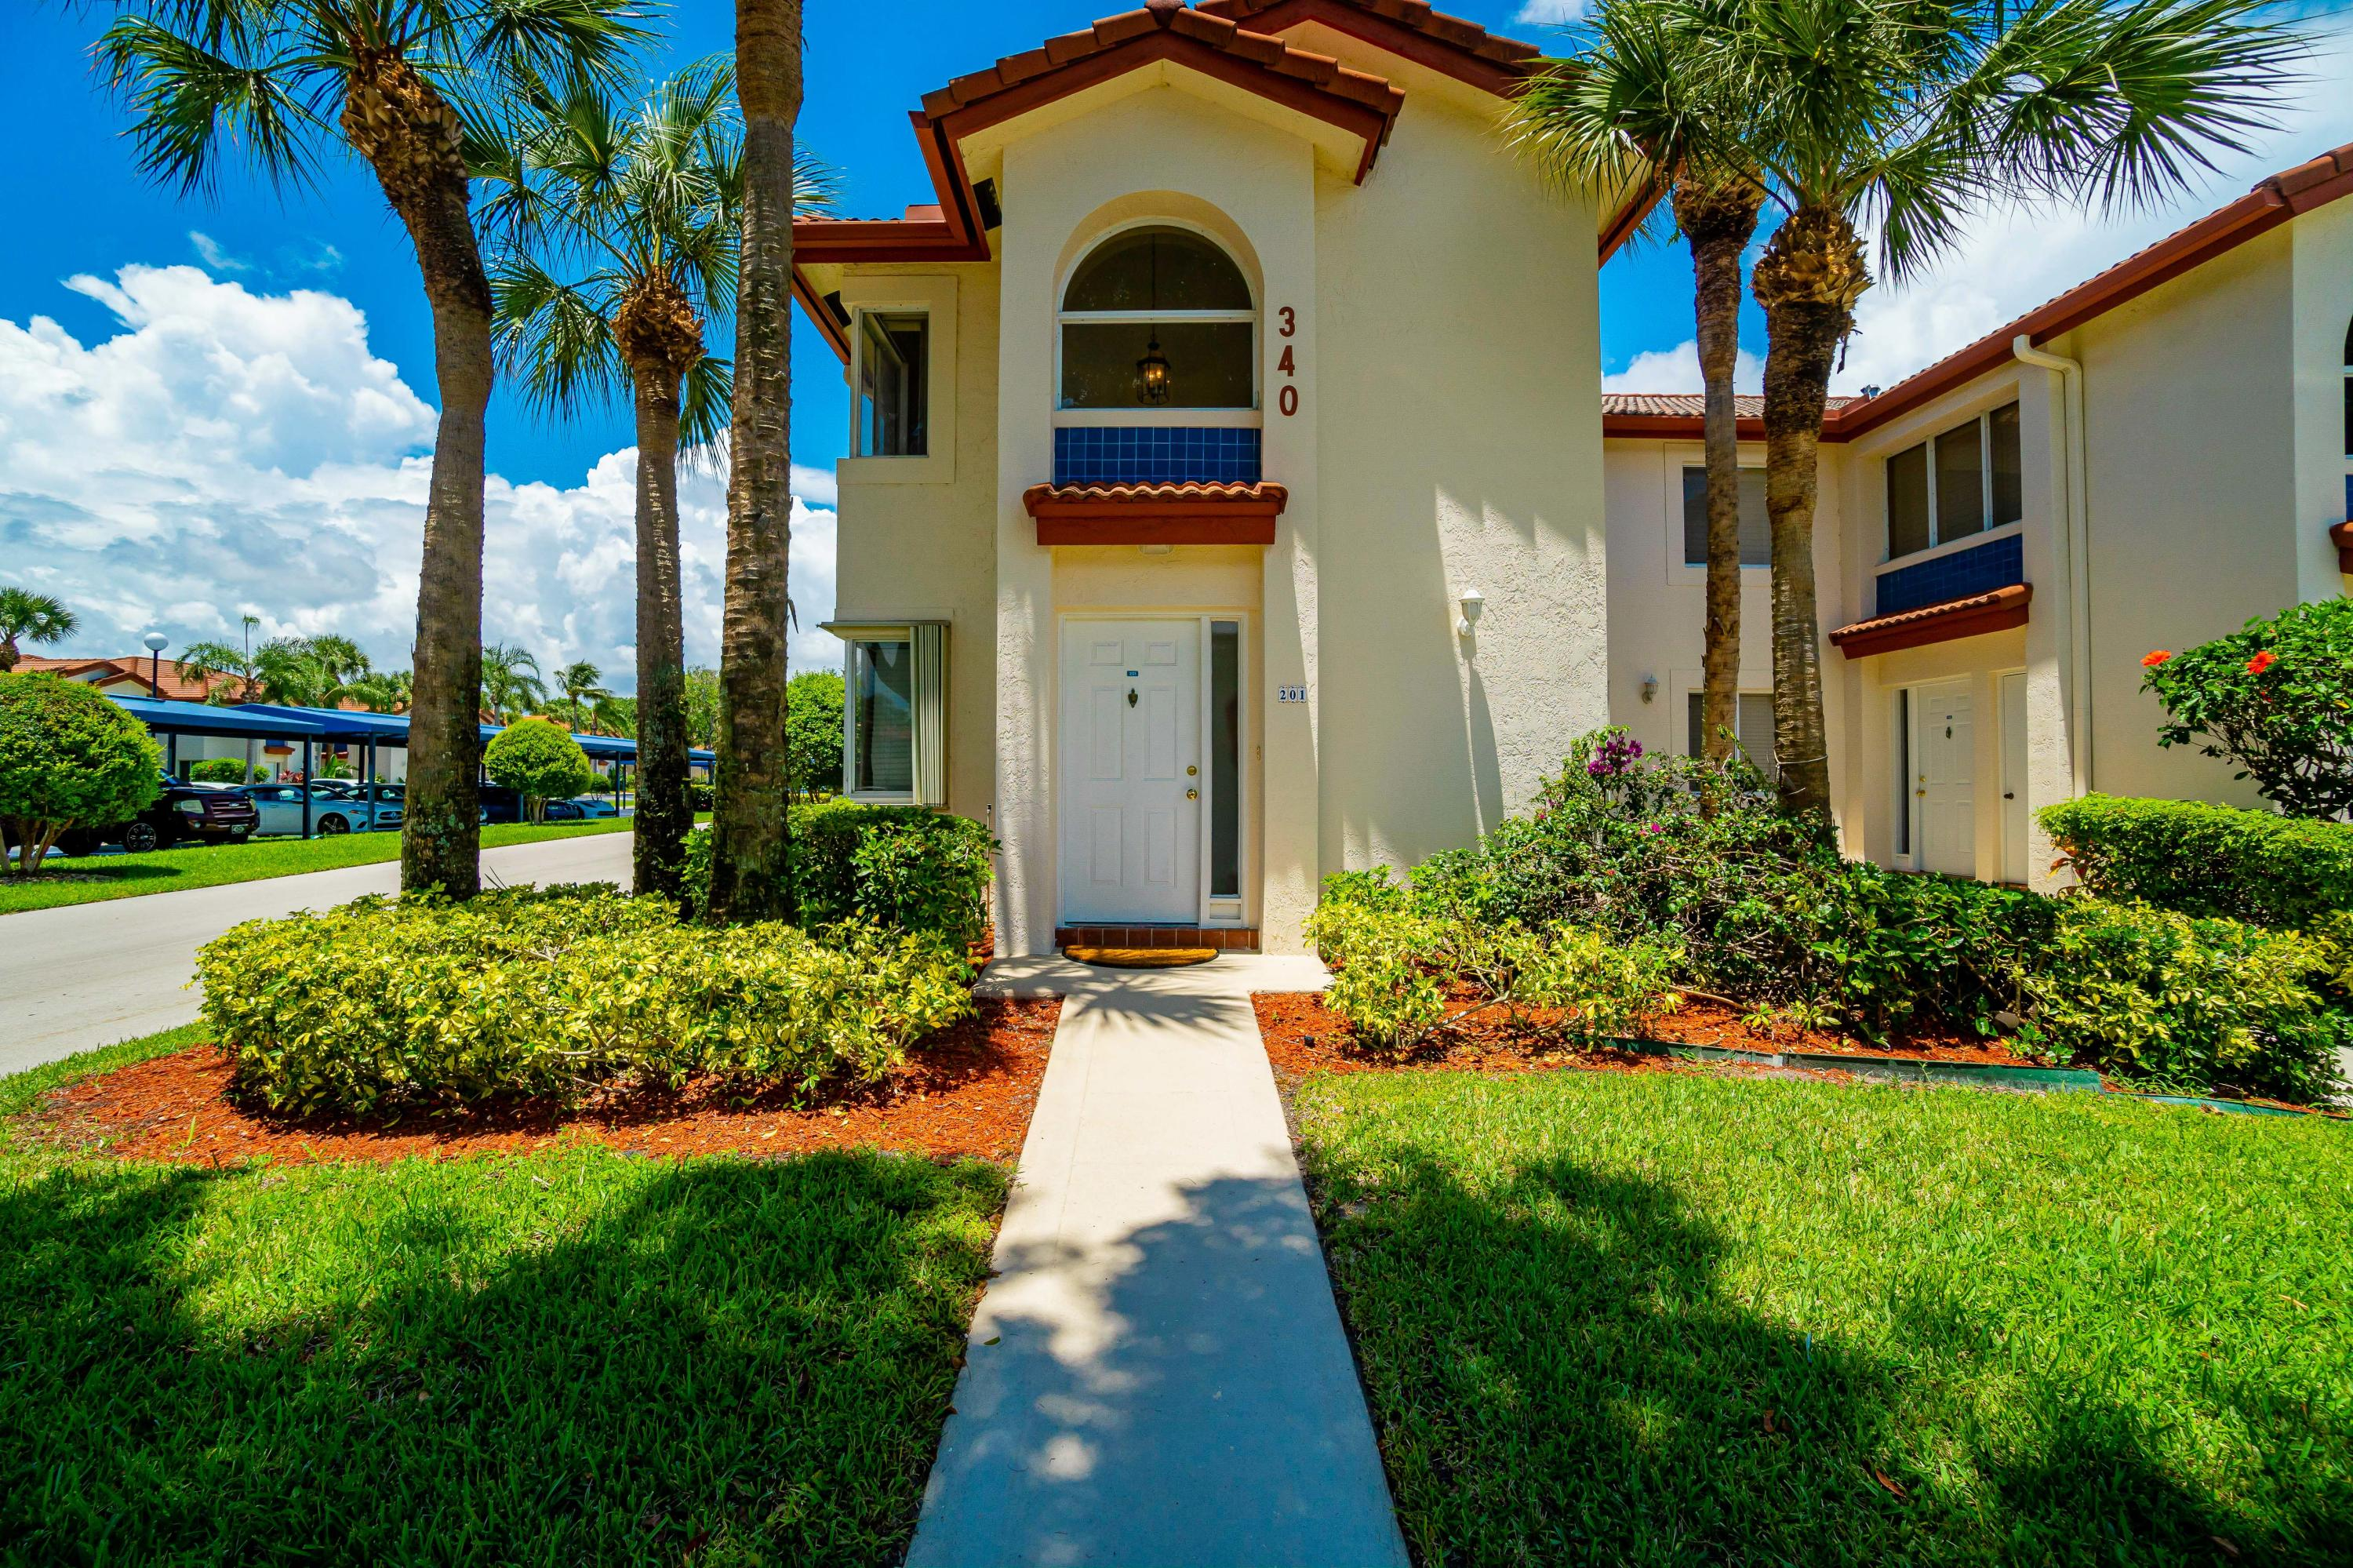 Beautiful 3 bedroom & 2 bath condo located in a charming San de Vance community in east Boca Raton, just minutes away from the beautiful beaches. This corner unit with private ground floor entry has vaulted ceilings & extra windows for plenty of natural light, spacious eat-in kitchen with stainless steel appliances, split floor plan with 3 bedrooms & 2 full baths, large walk-in master closet, a separate laundry room & a spacious screened balcony. The condo comes with a shared storage room & a covered assigned parking spot. San de Vance is a pet friendly community with great amenities: heated pool, fitness room, tennis and pickle ball court, clubhouse, BBQ grills, car wash area, passive entry gate, etc. Condo fee covers upgraded cable, high-speed internet, water, building insurance & more.